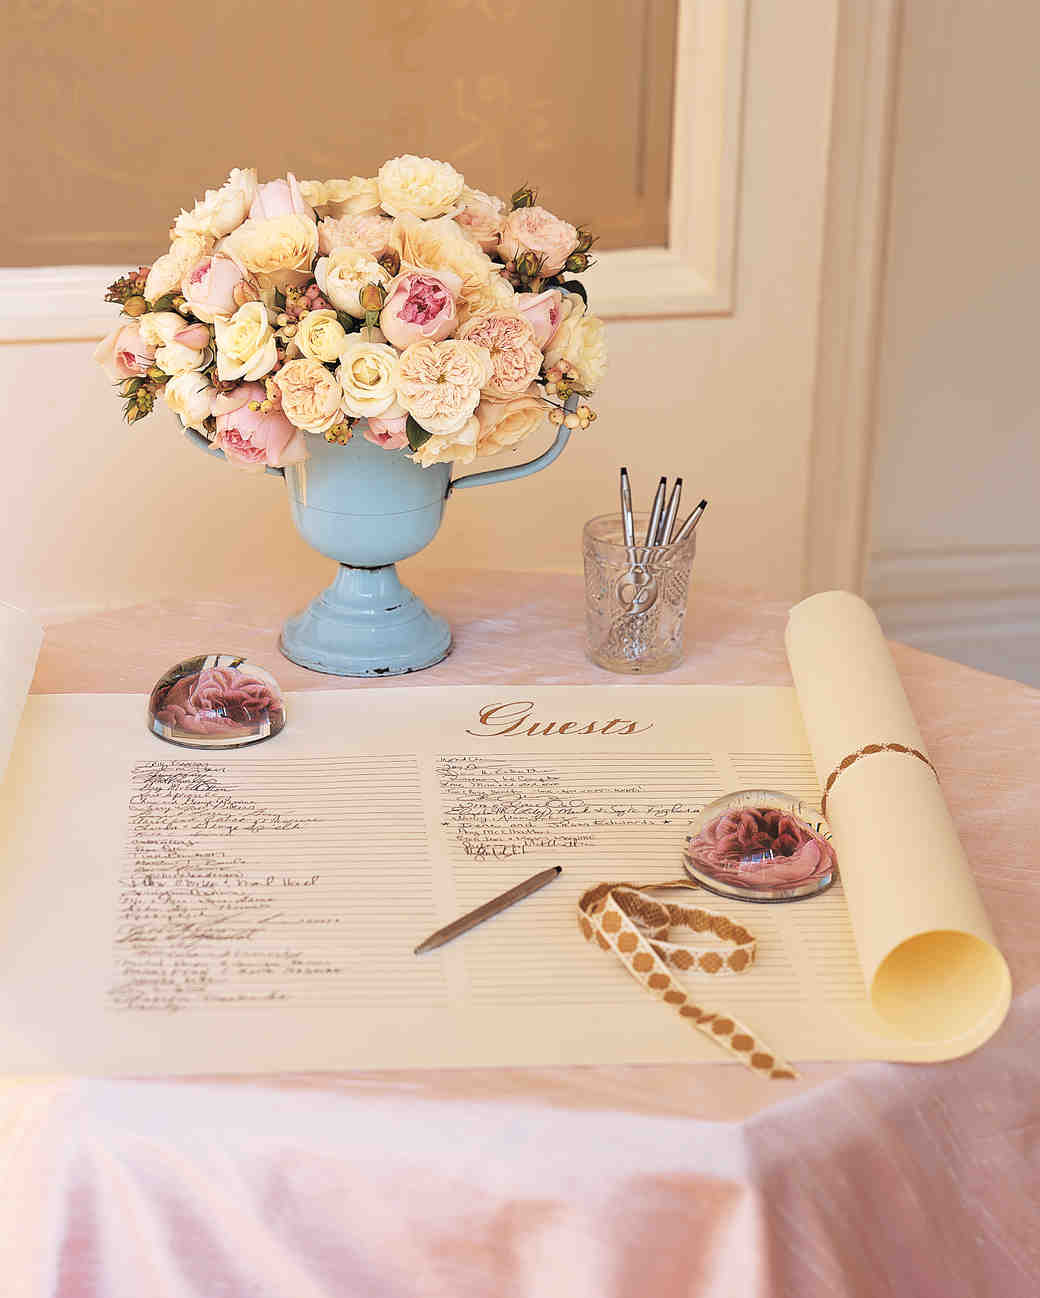 68 Guest Books from Real Weddings  Martha Stewart Weddings